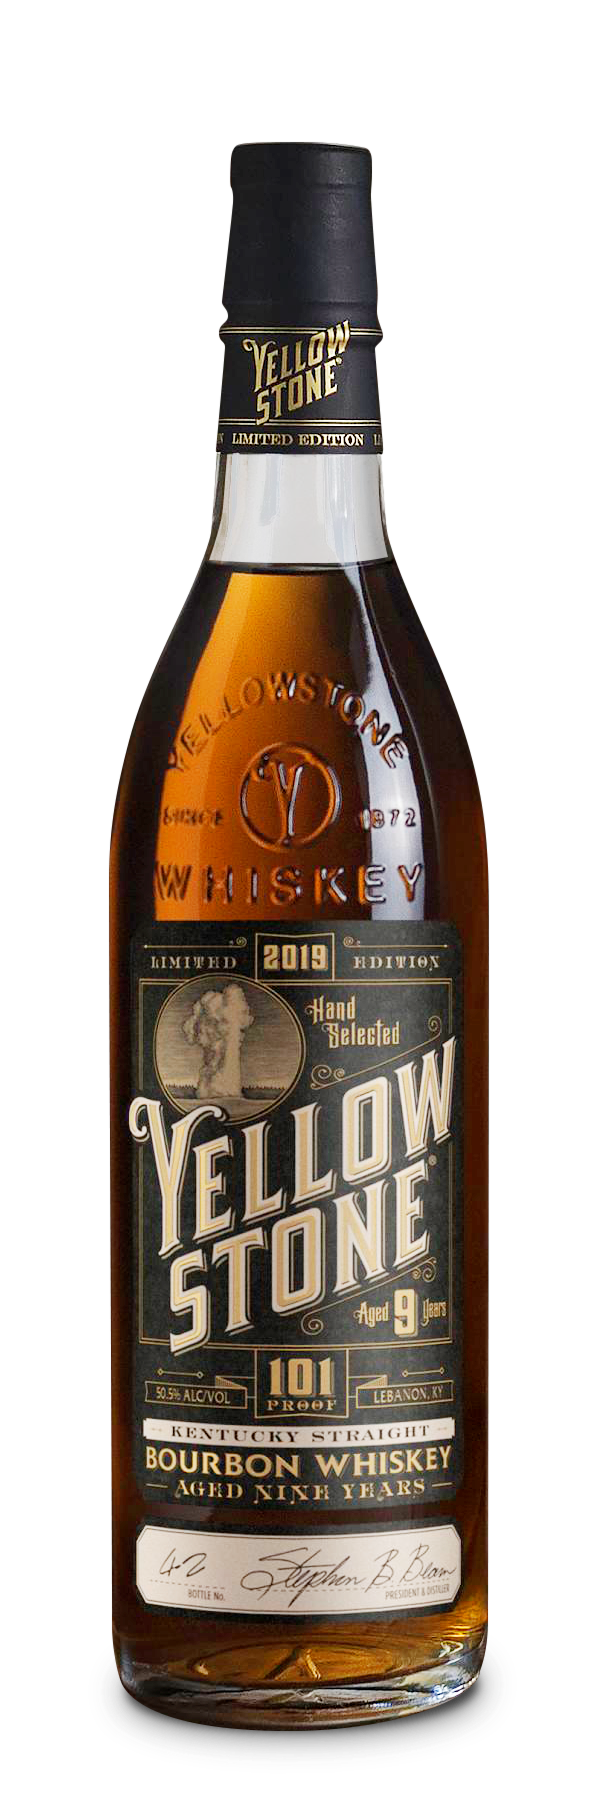 Yellowstone 2019 Limited Edition Bourbon Whiskey